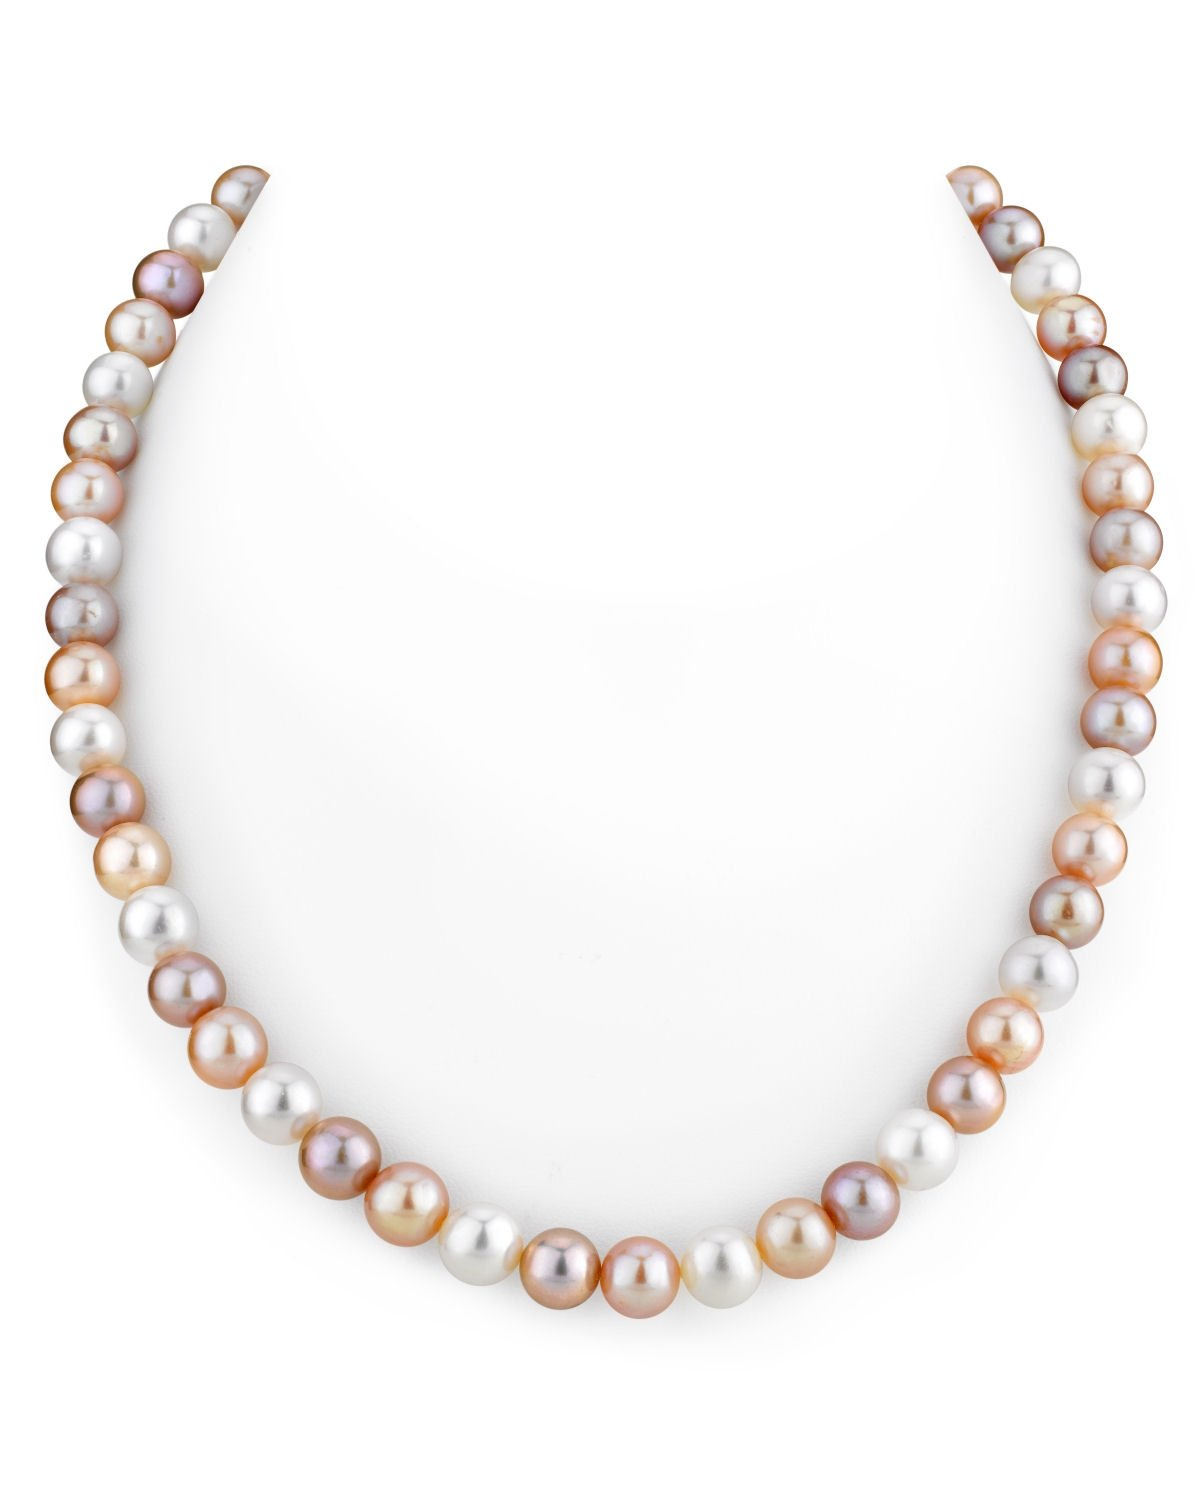 Round Freshwater Multicolor Cultured Pearl Necklace - AAA Quality